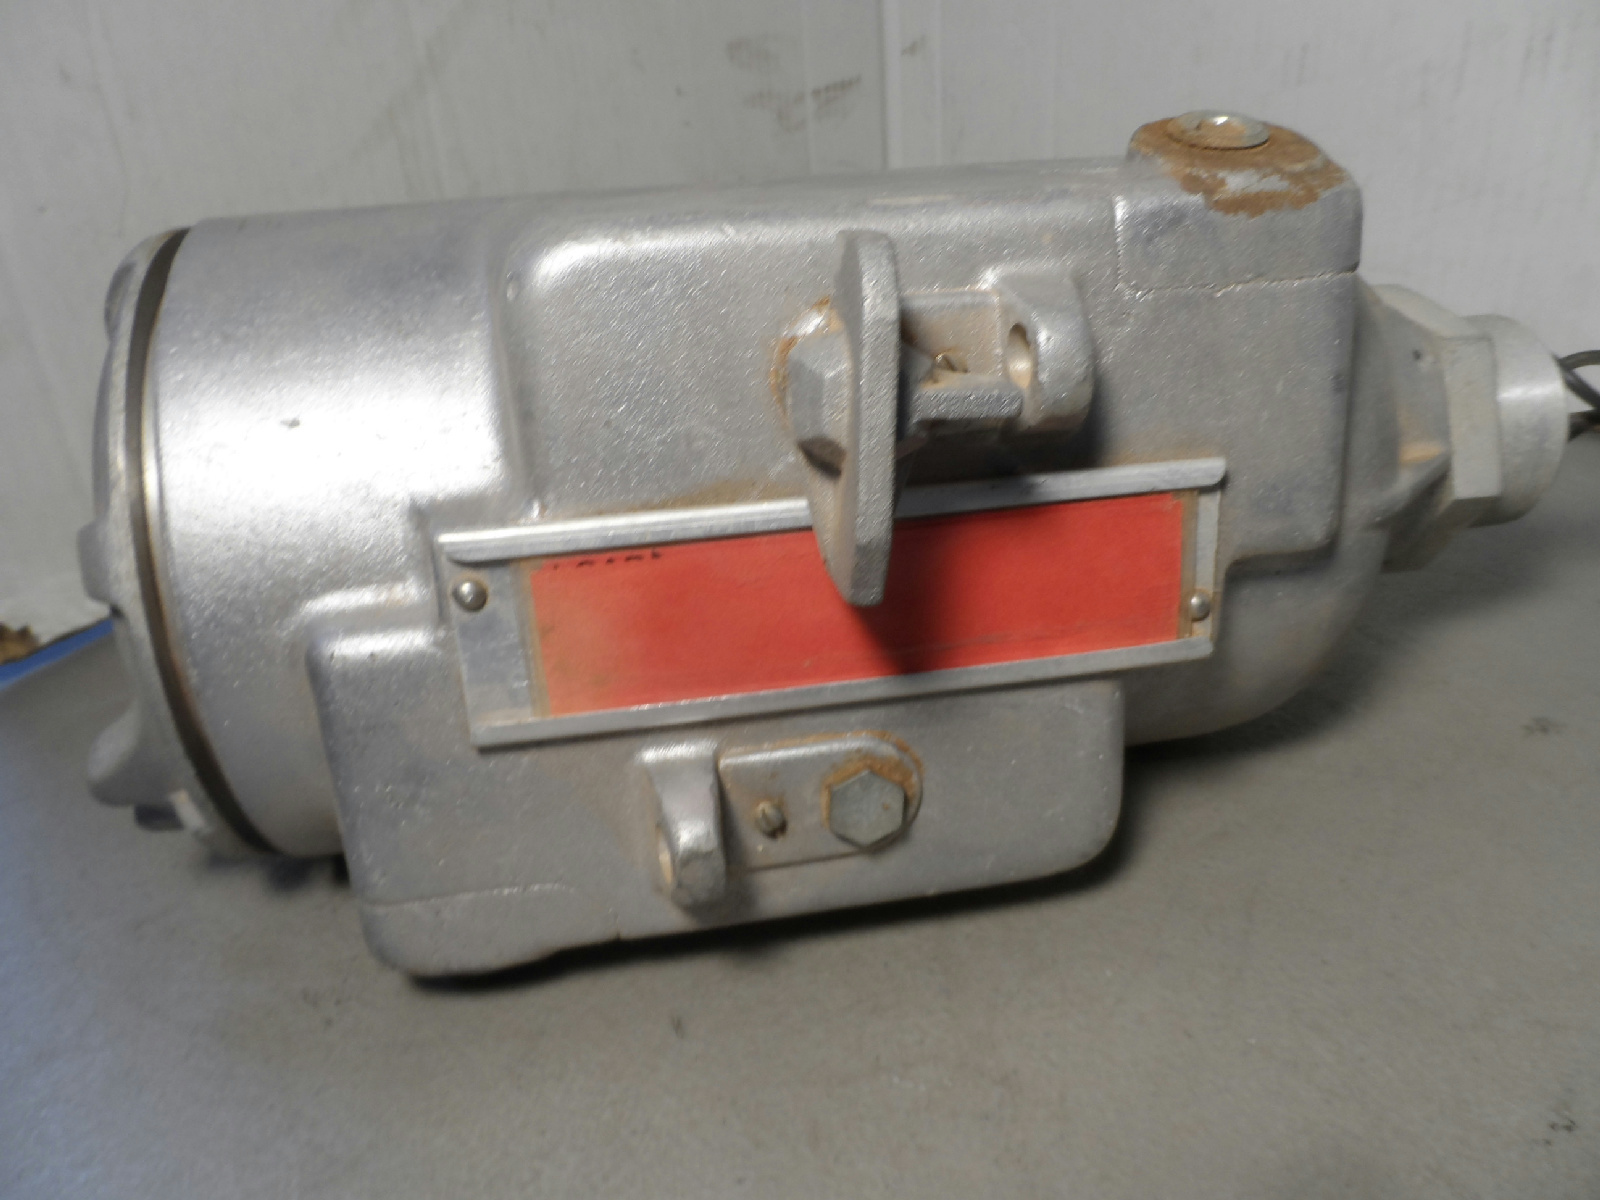 Crouse-Hinds Explosion Proof Enclosure and 26 similar items